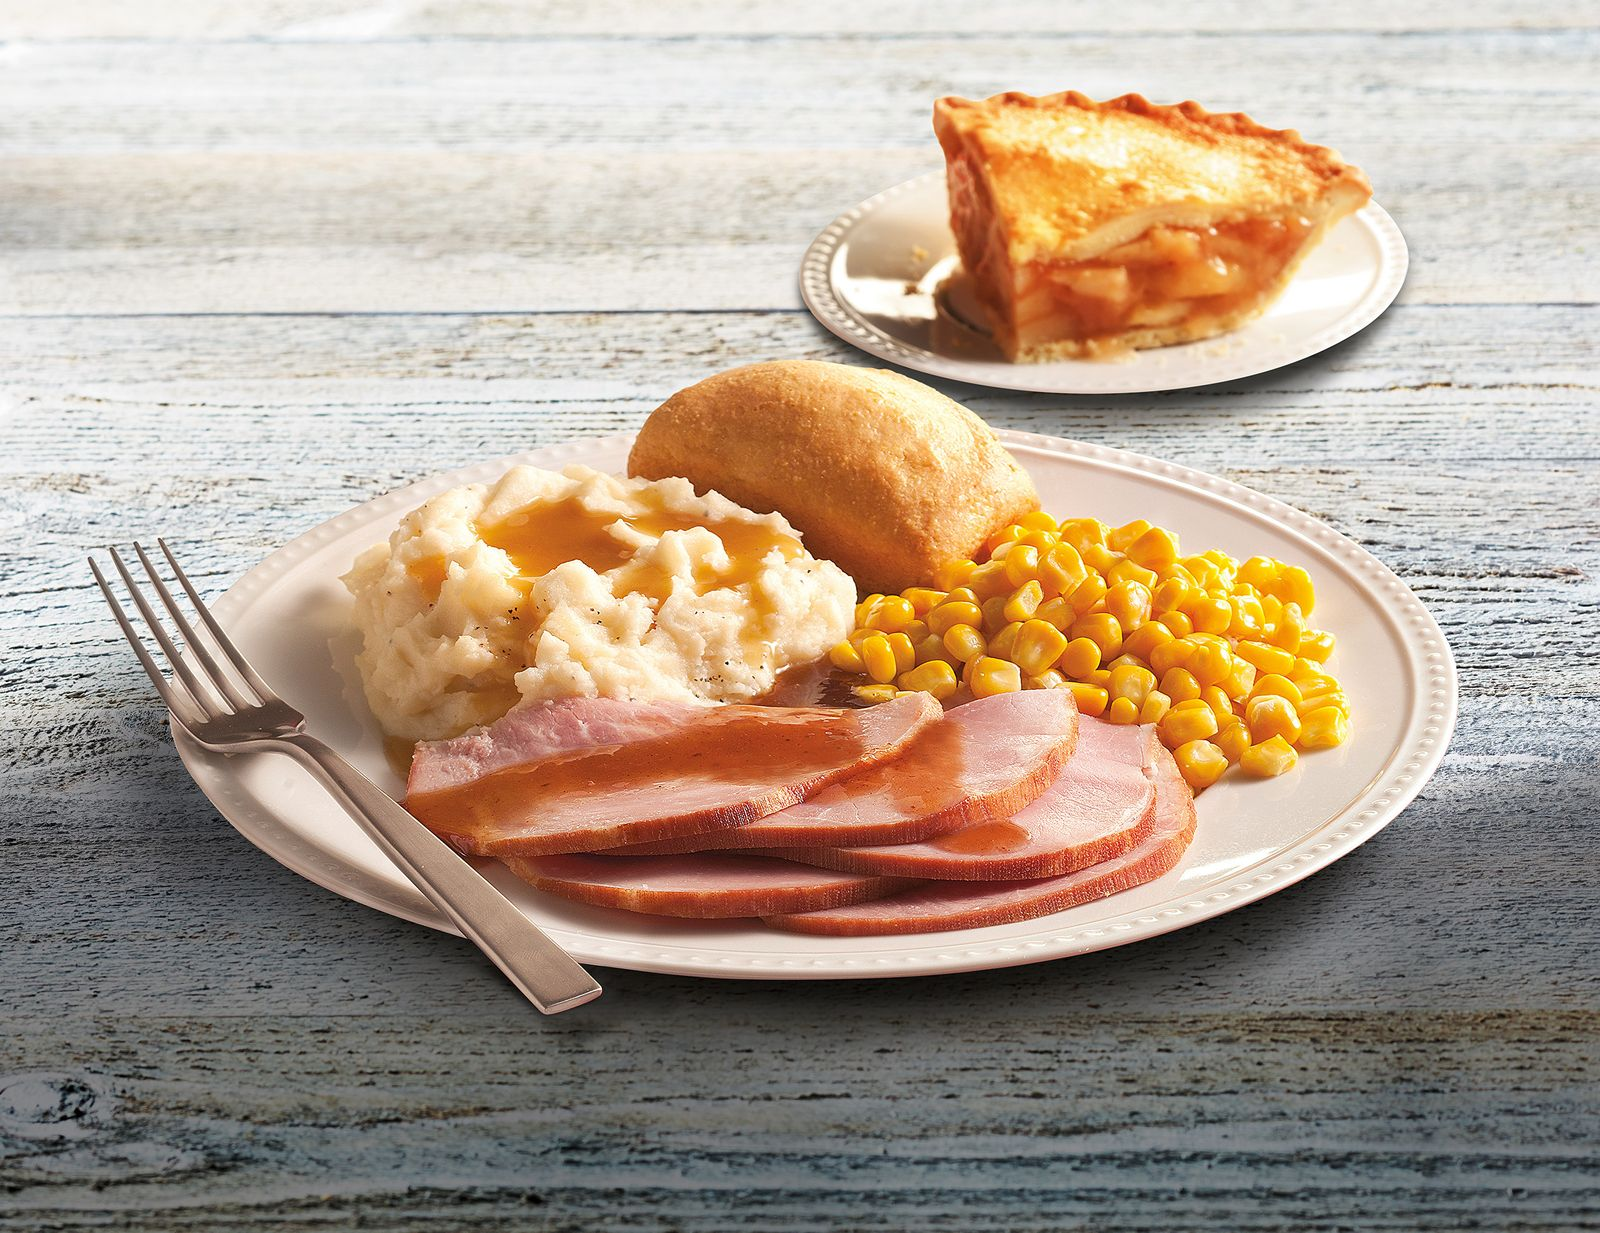 Boston Market Restaurantnewsrelease Com